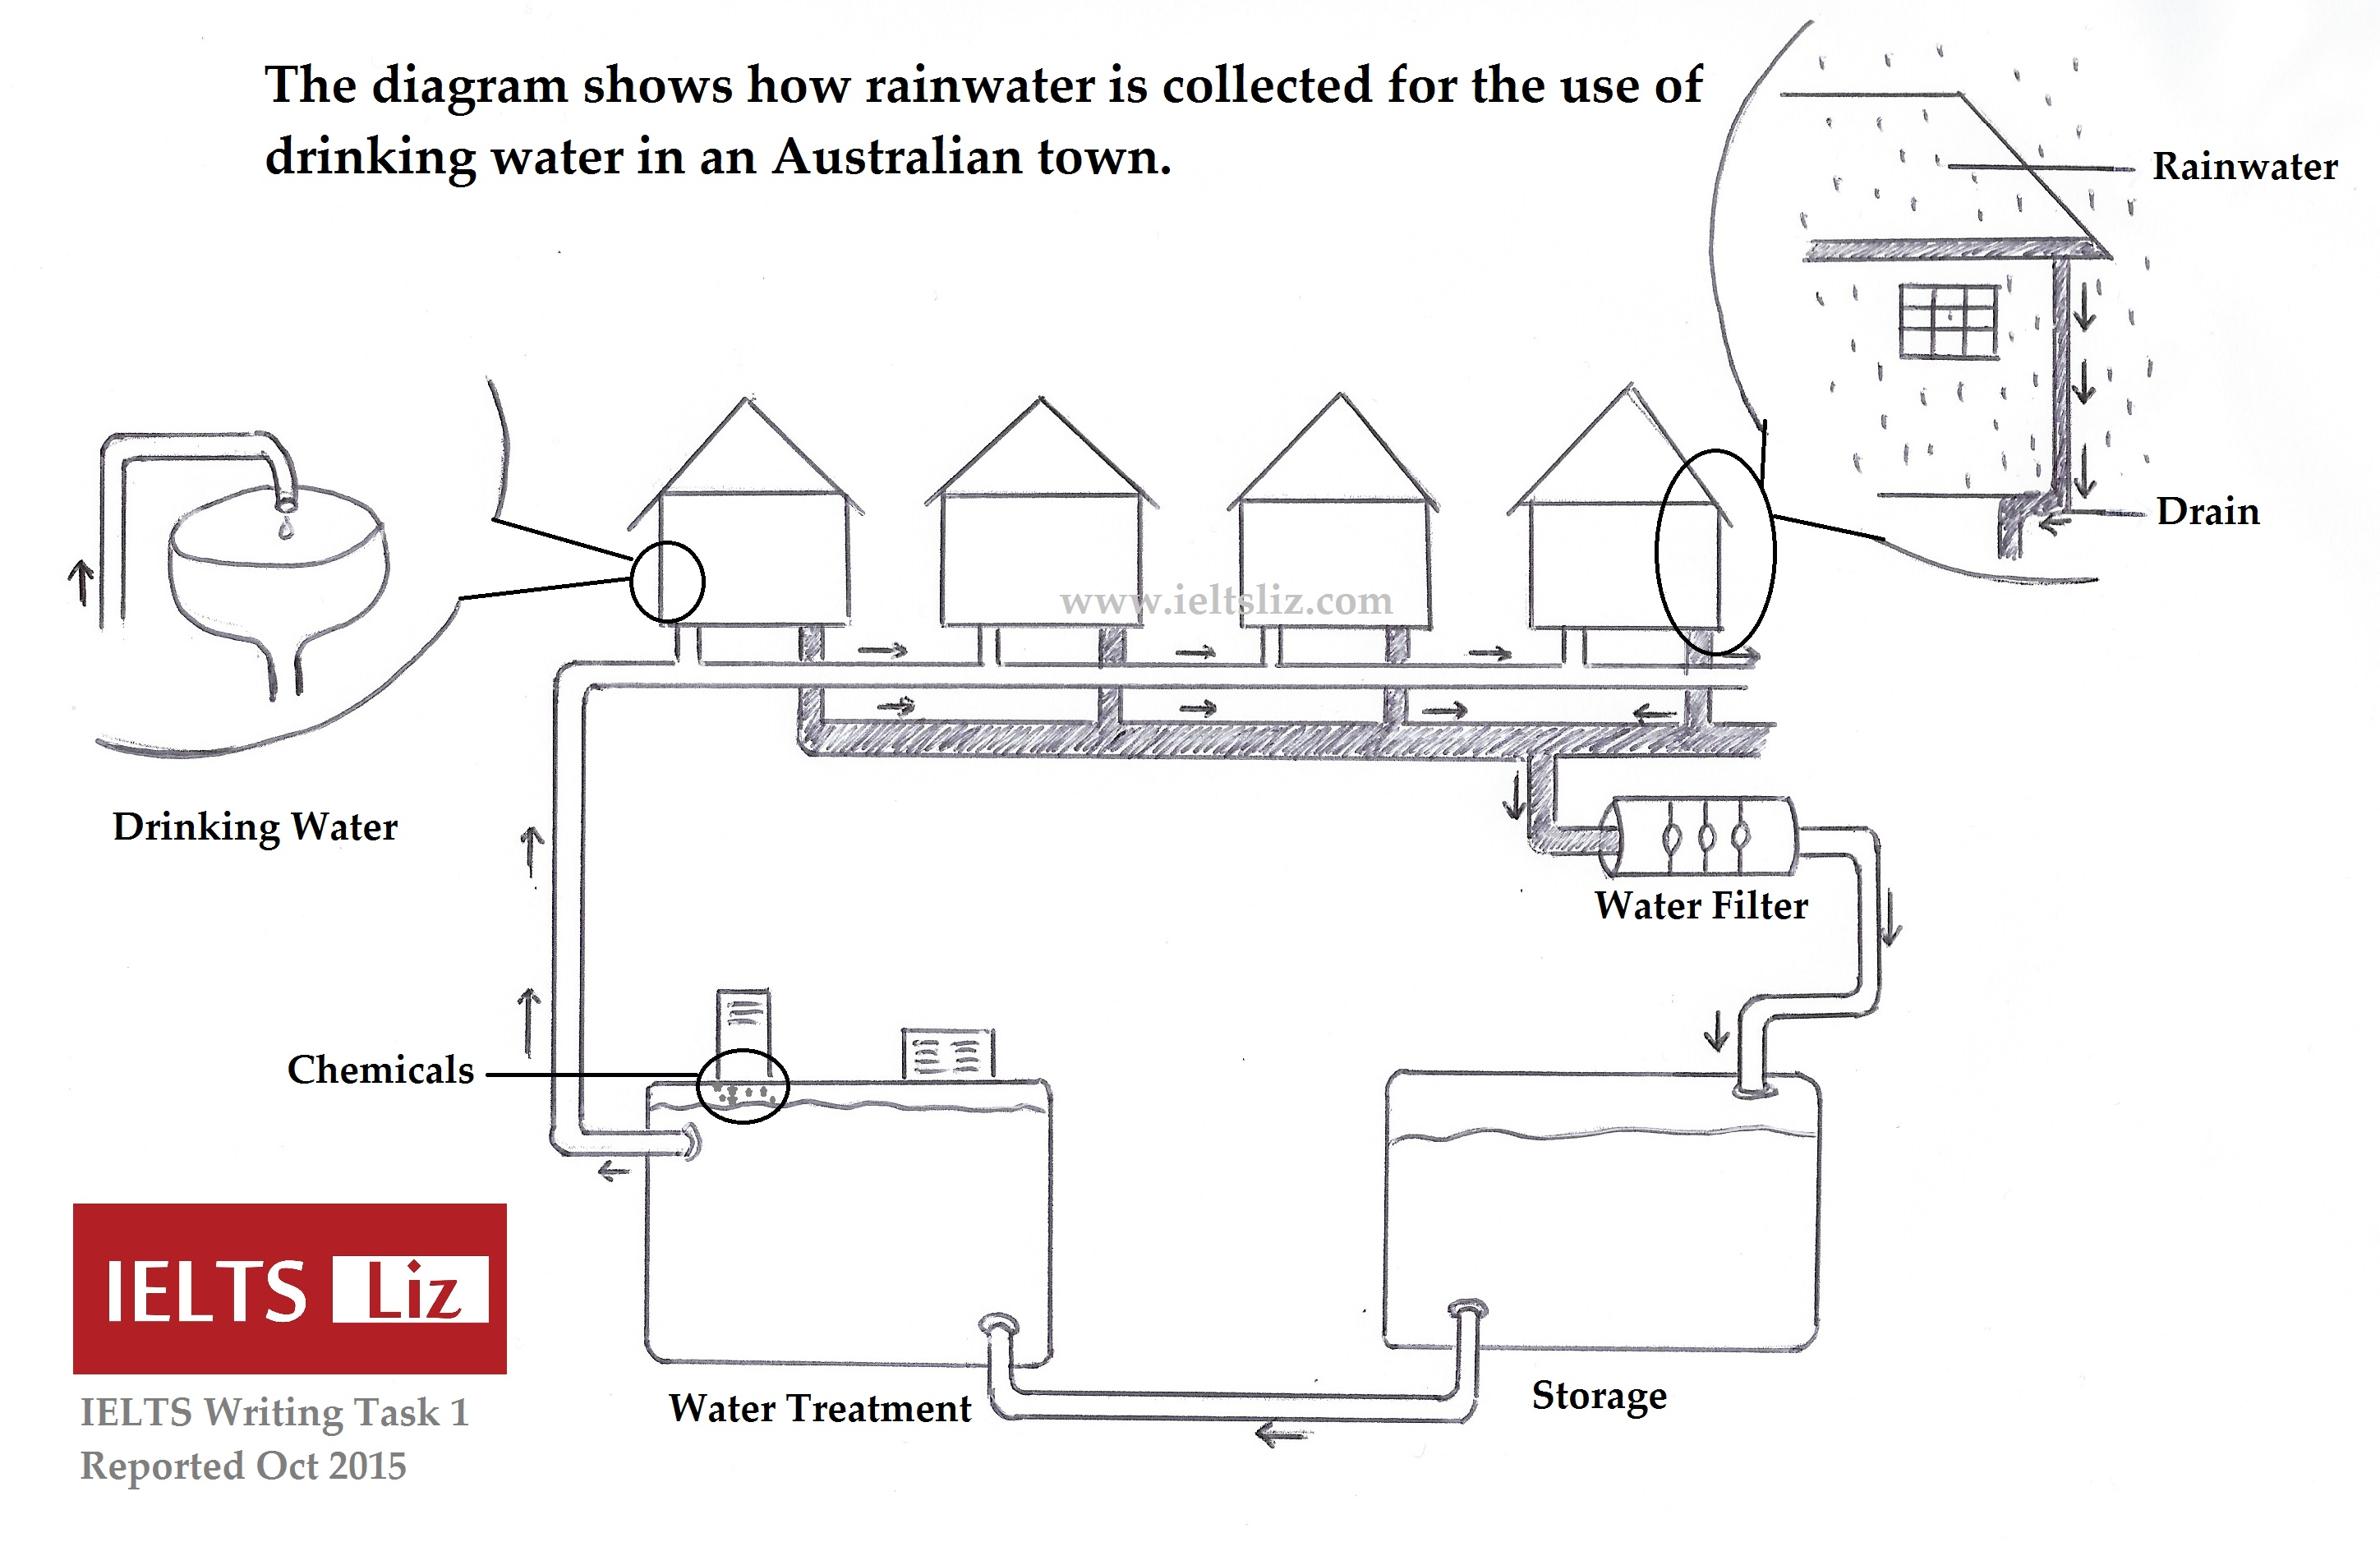 Ielts Rainwater Diagram Reported 2018 To Make Flow Chart Drawing Illustration Water Cycle